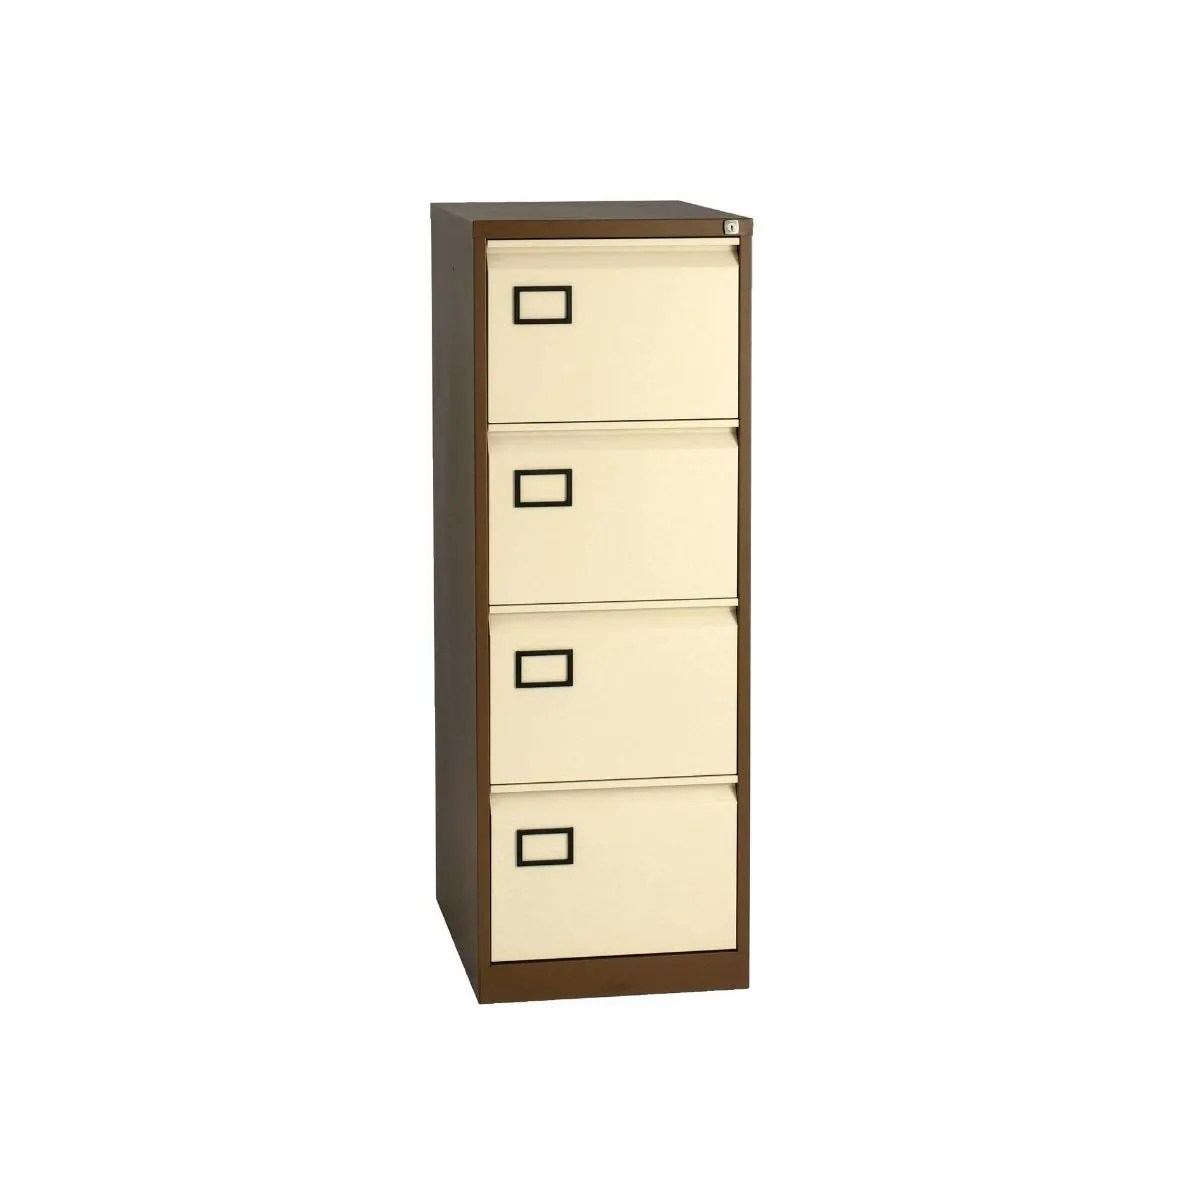 ... Bisley Filing Cabinet Lock By Bisley 4 Drawer Filing Cabinet Foolscap  Coffee Amp Cream ...